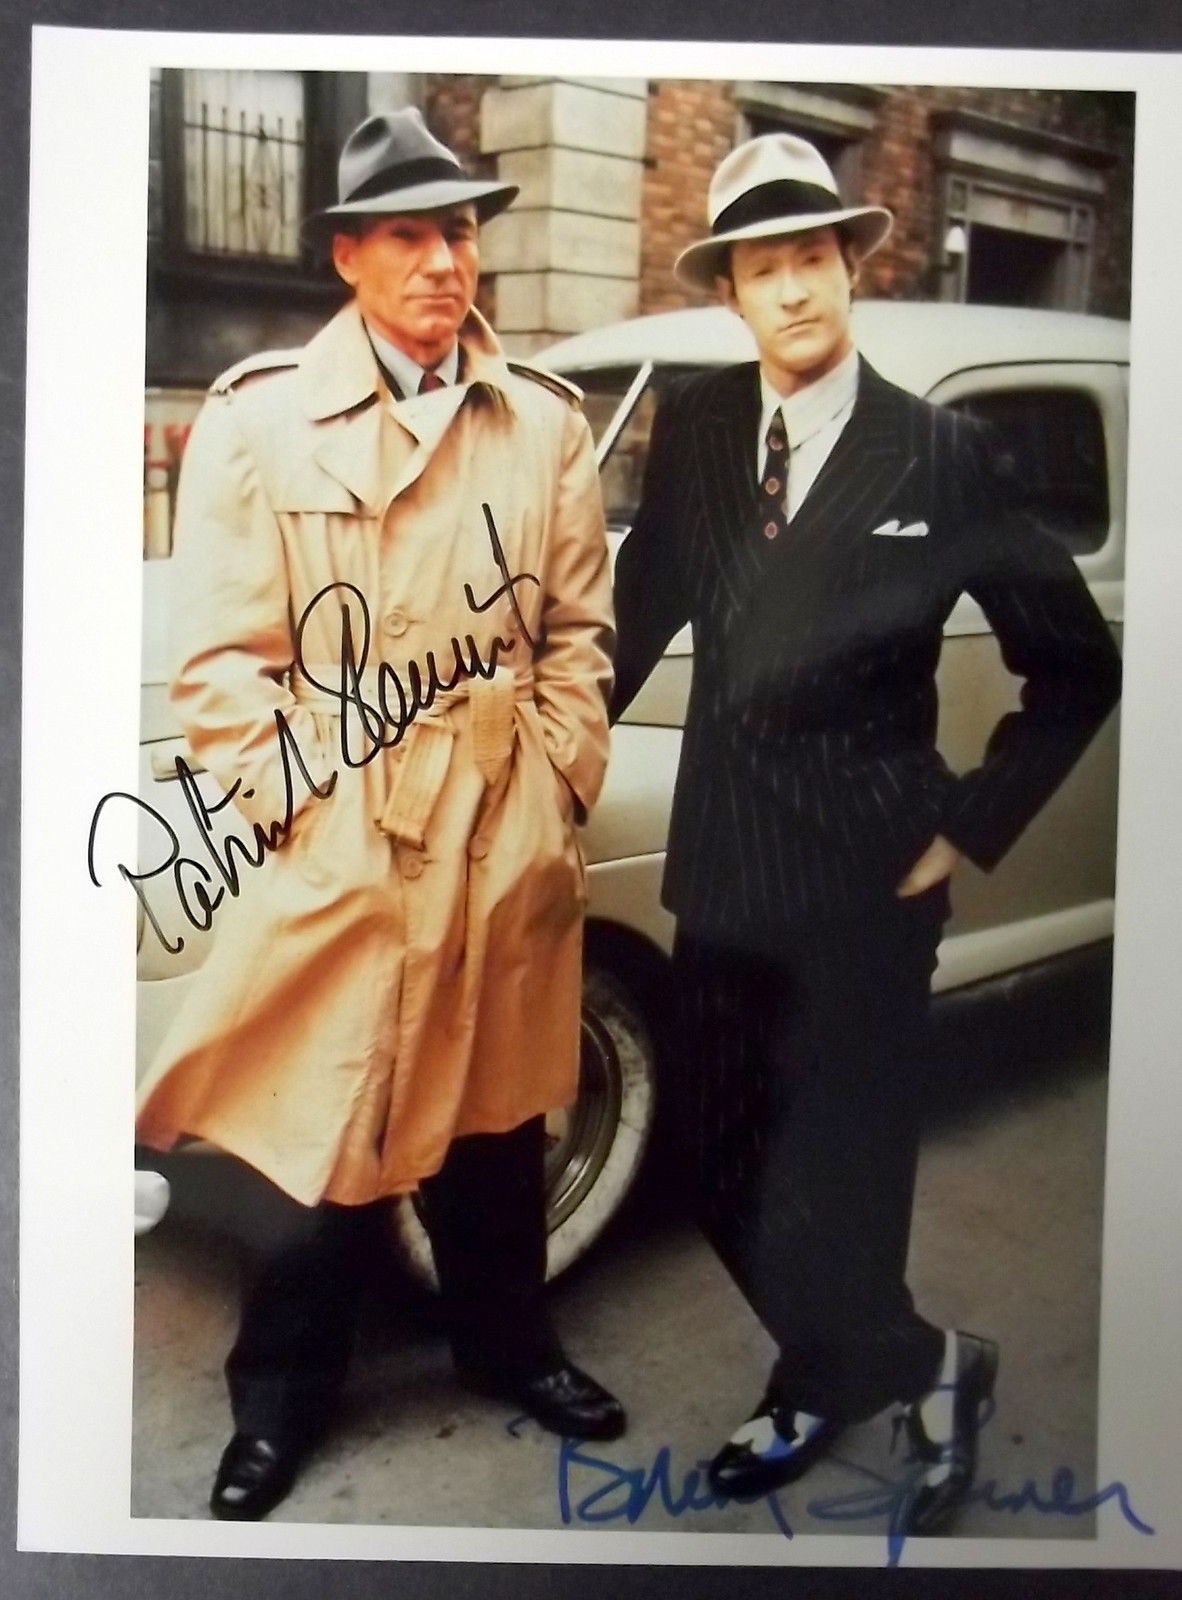 PATRICK STEWARD,BRENT SPINER (STAR TREK GENERATION) ORIG,AUTOGRAPH PHOTO (WOW)